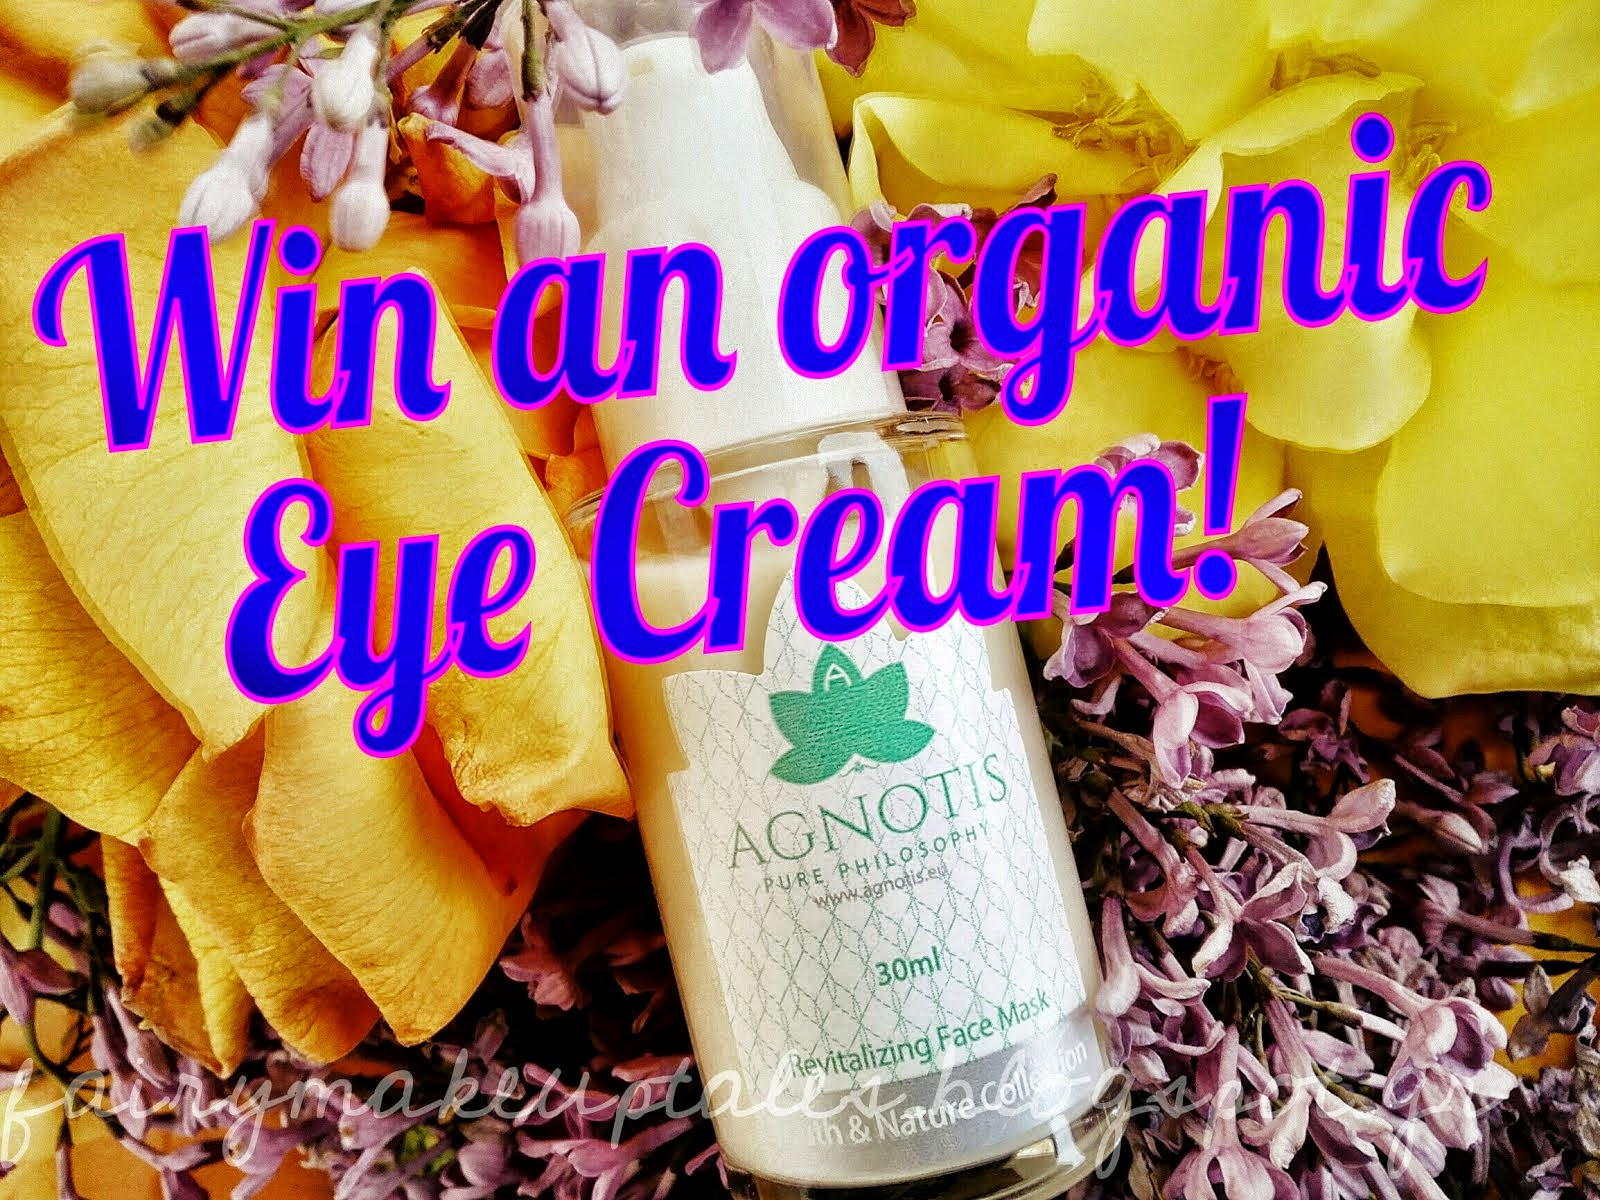 Win an Organic Eye Cream from Pure Philisophy AGNOTIS!